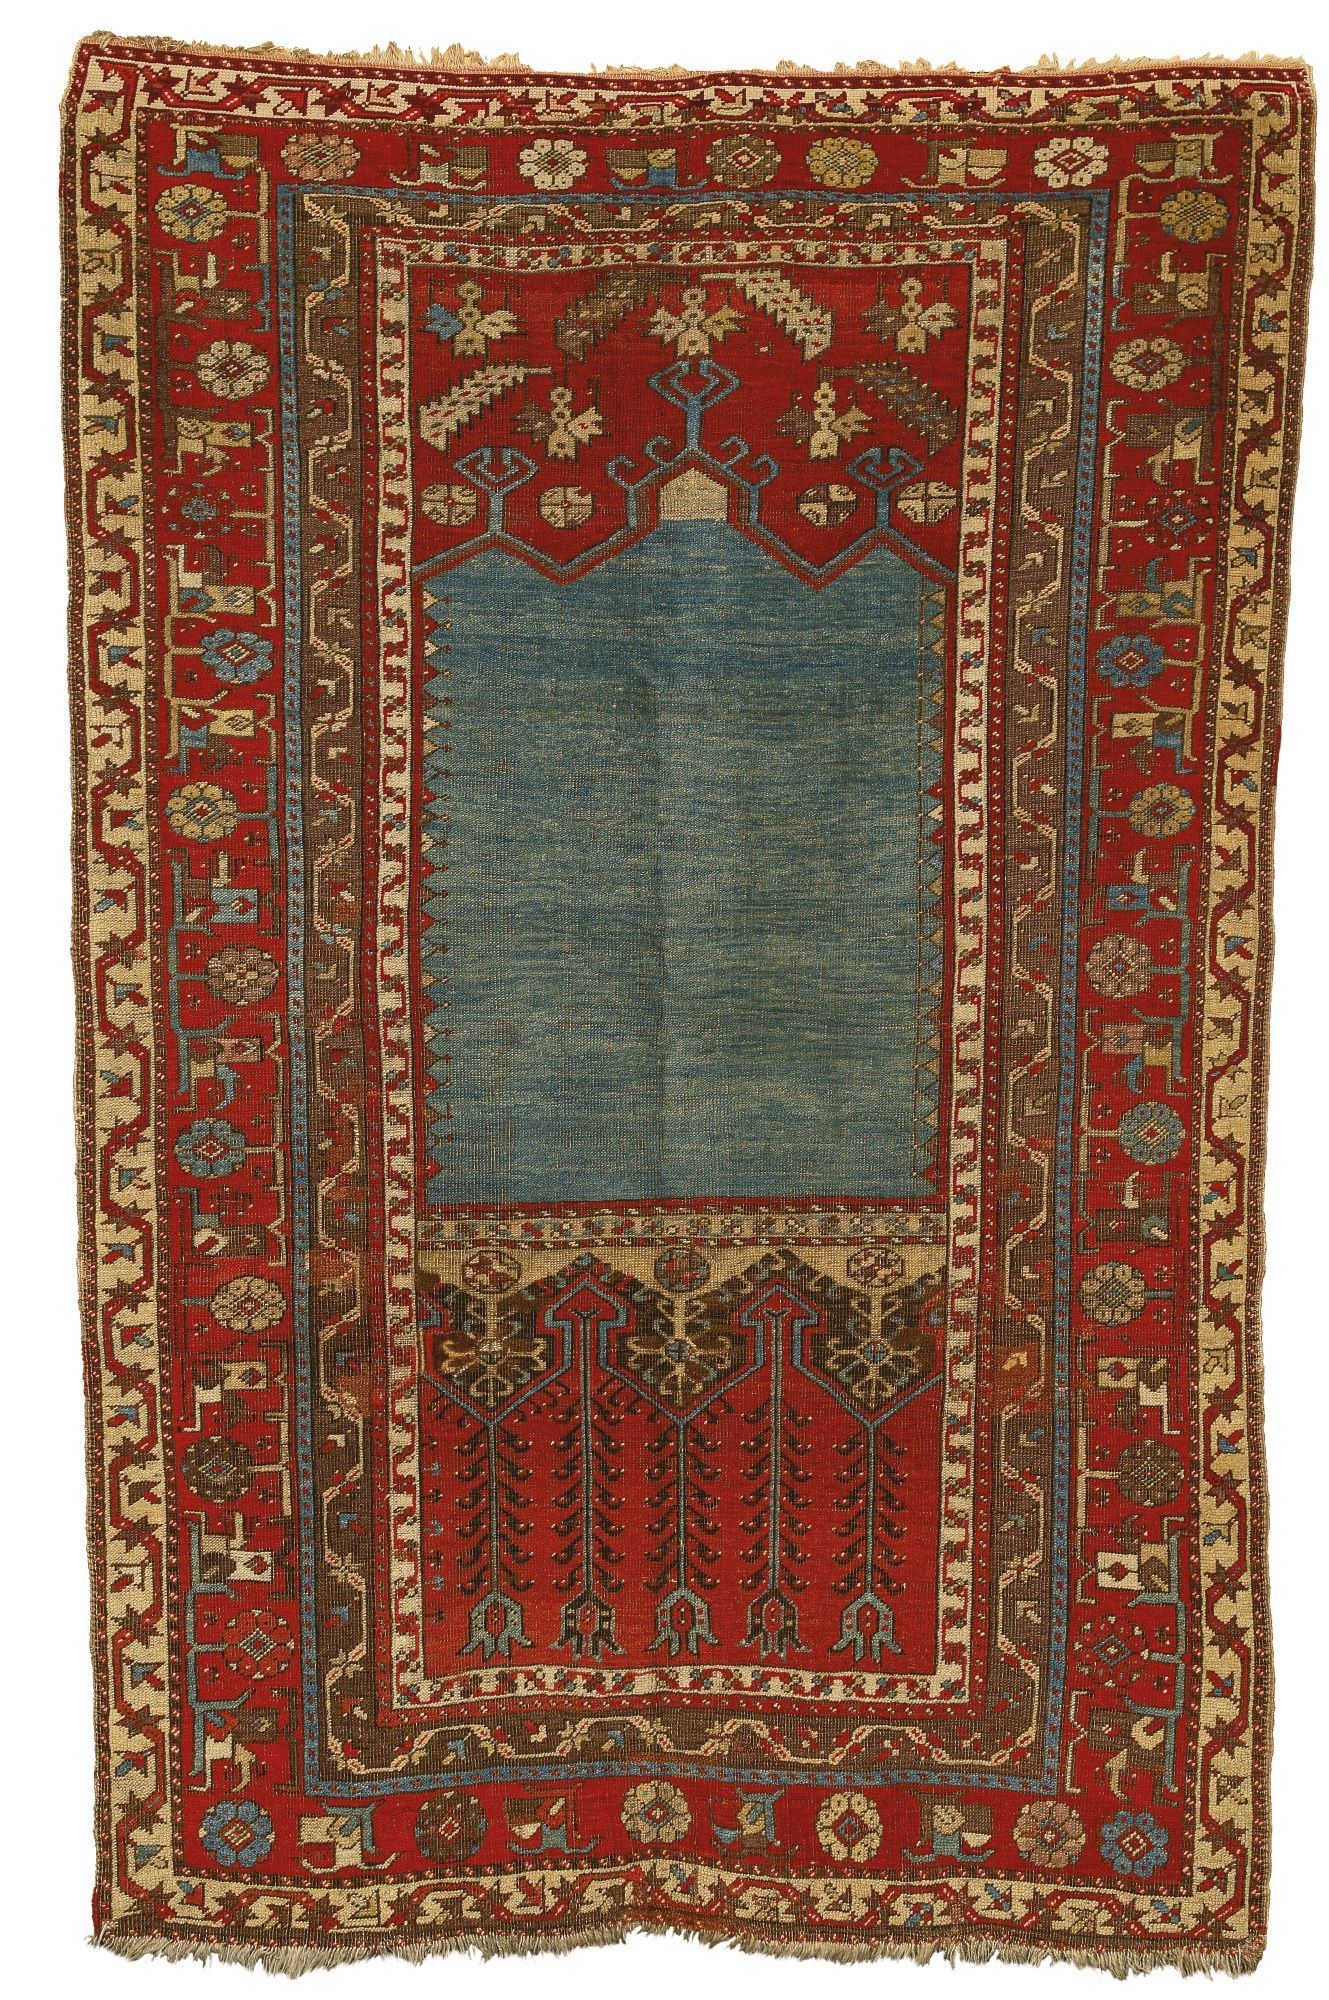 Teppich Reparieren A Ladik Prayer Rug Central Anatolia Approximately 5ft 10in By